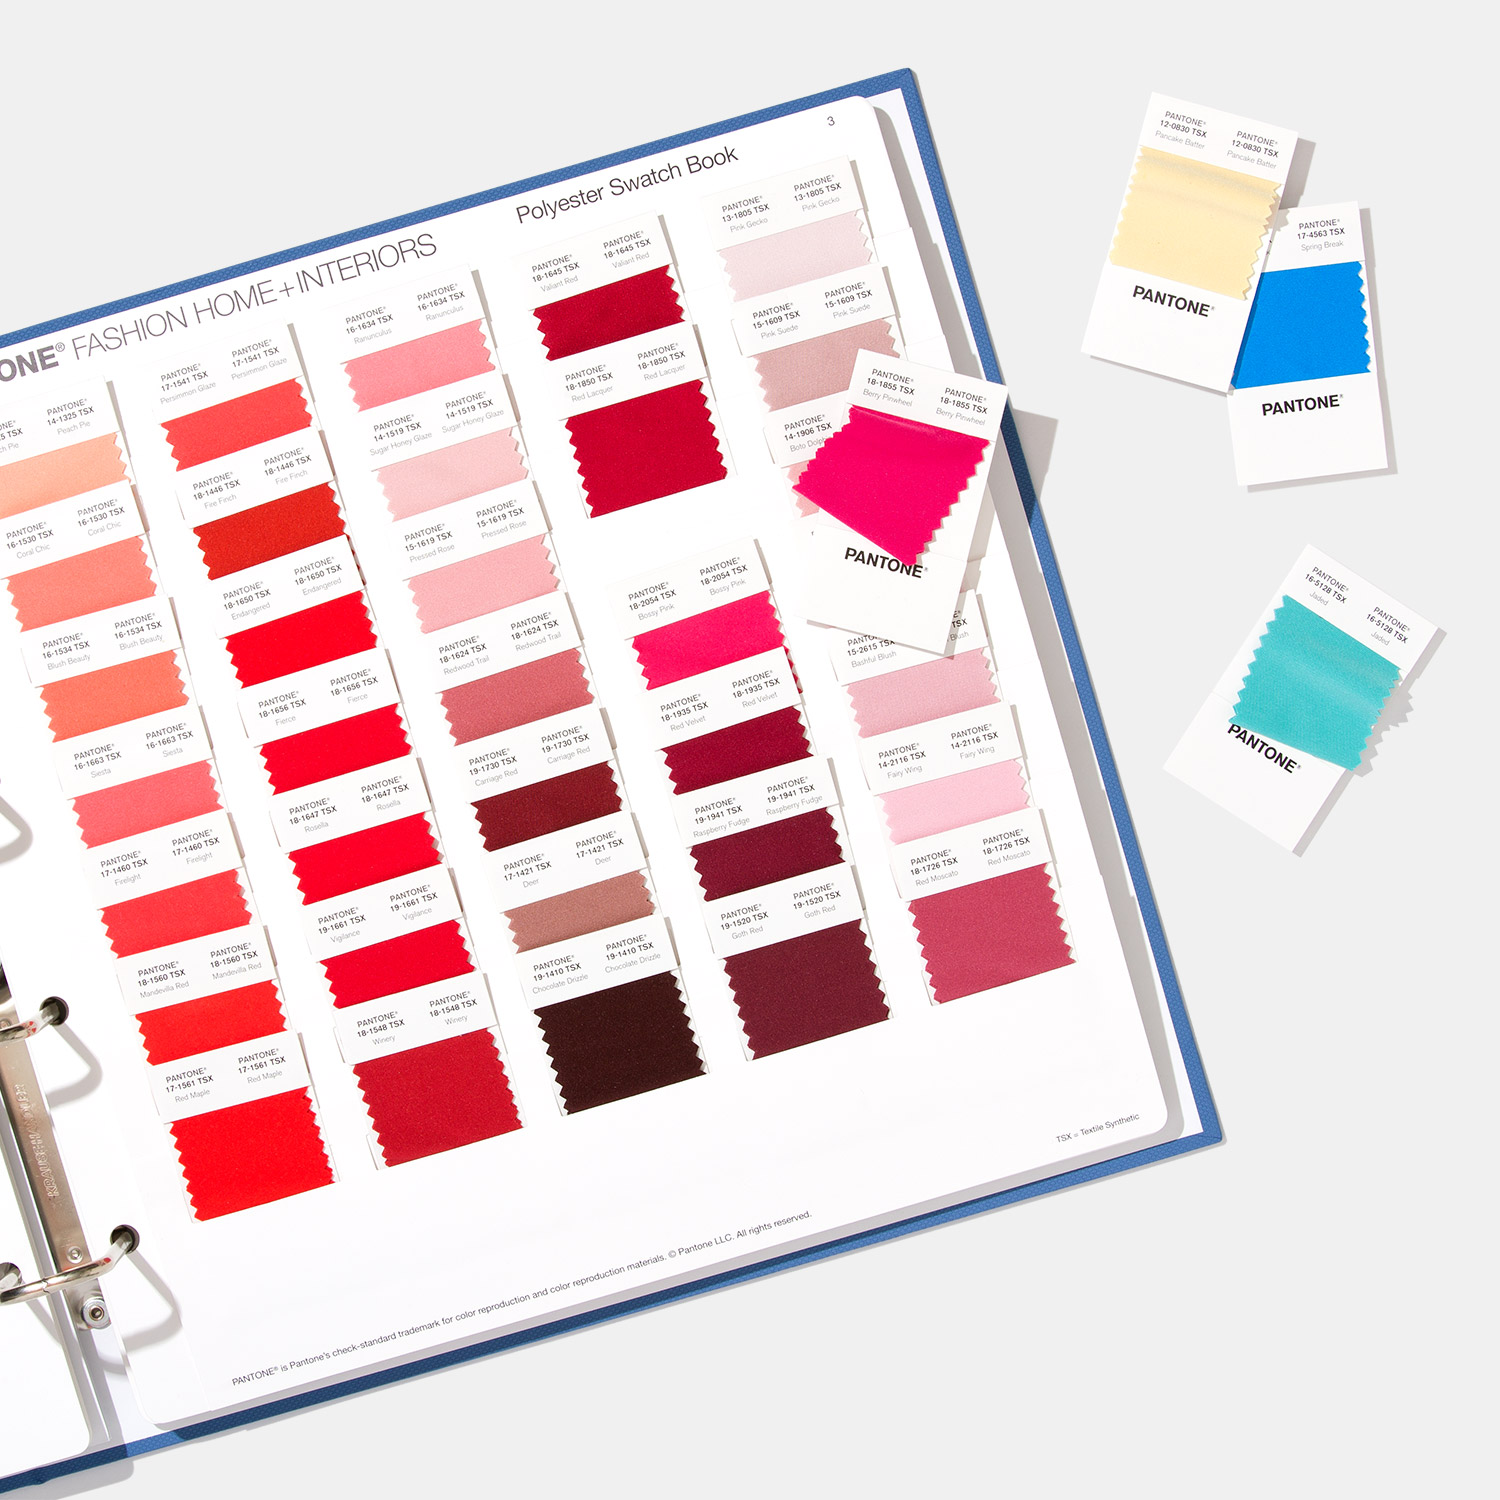 Pantone Fashion, Home + Interiors Polyester Swatch Book